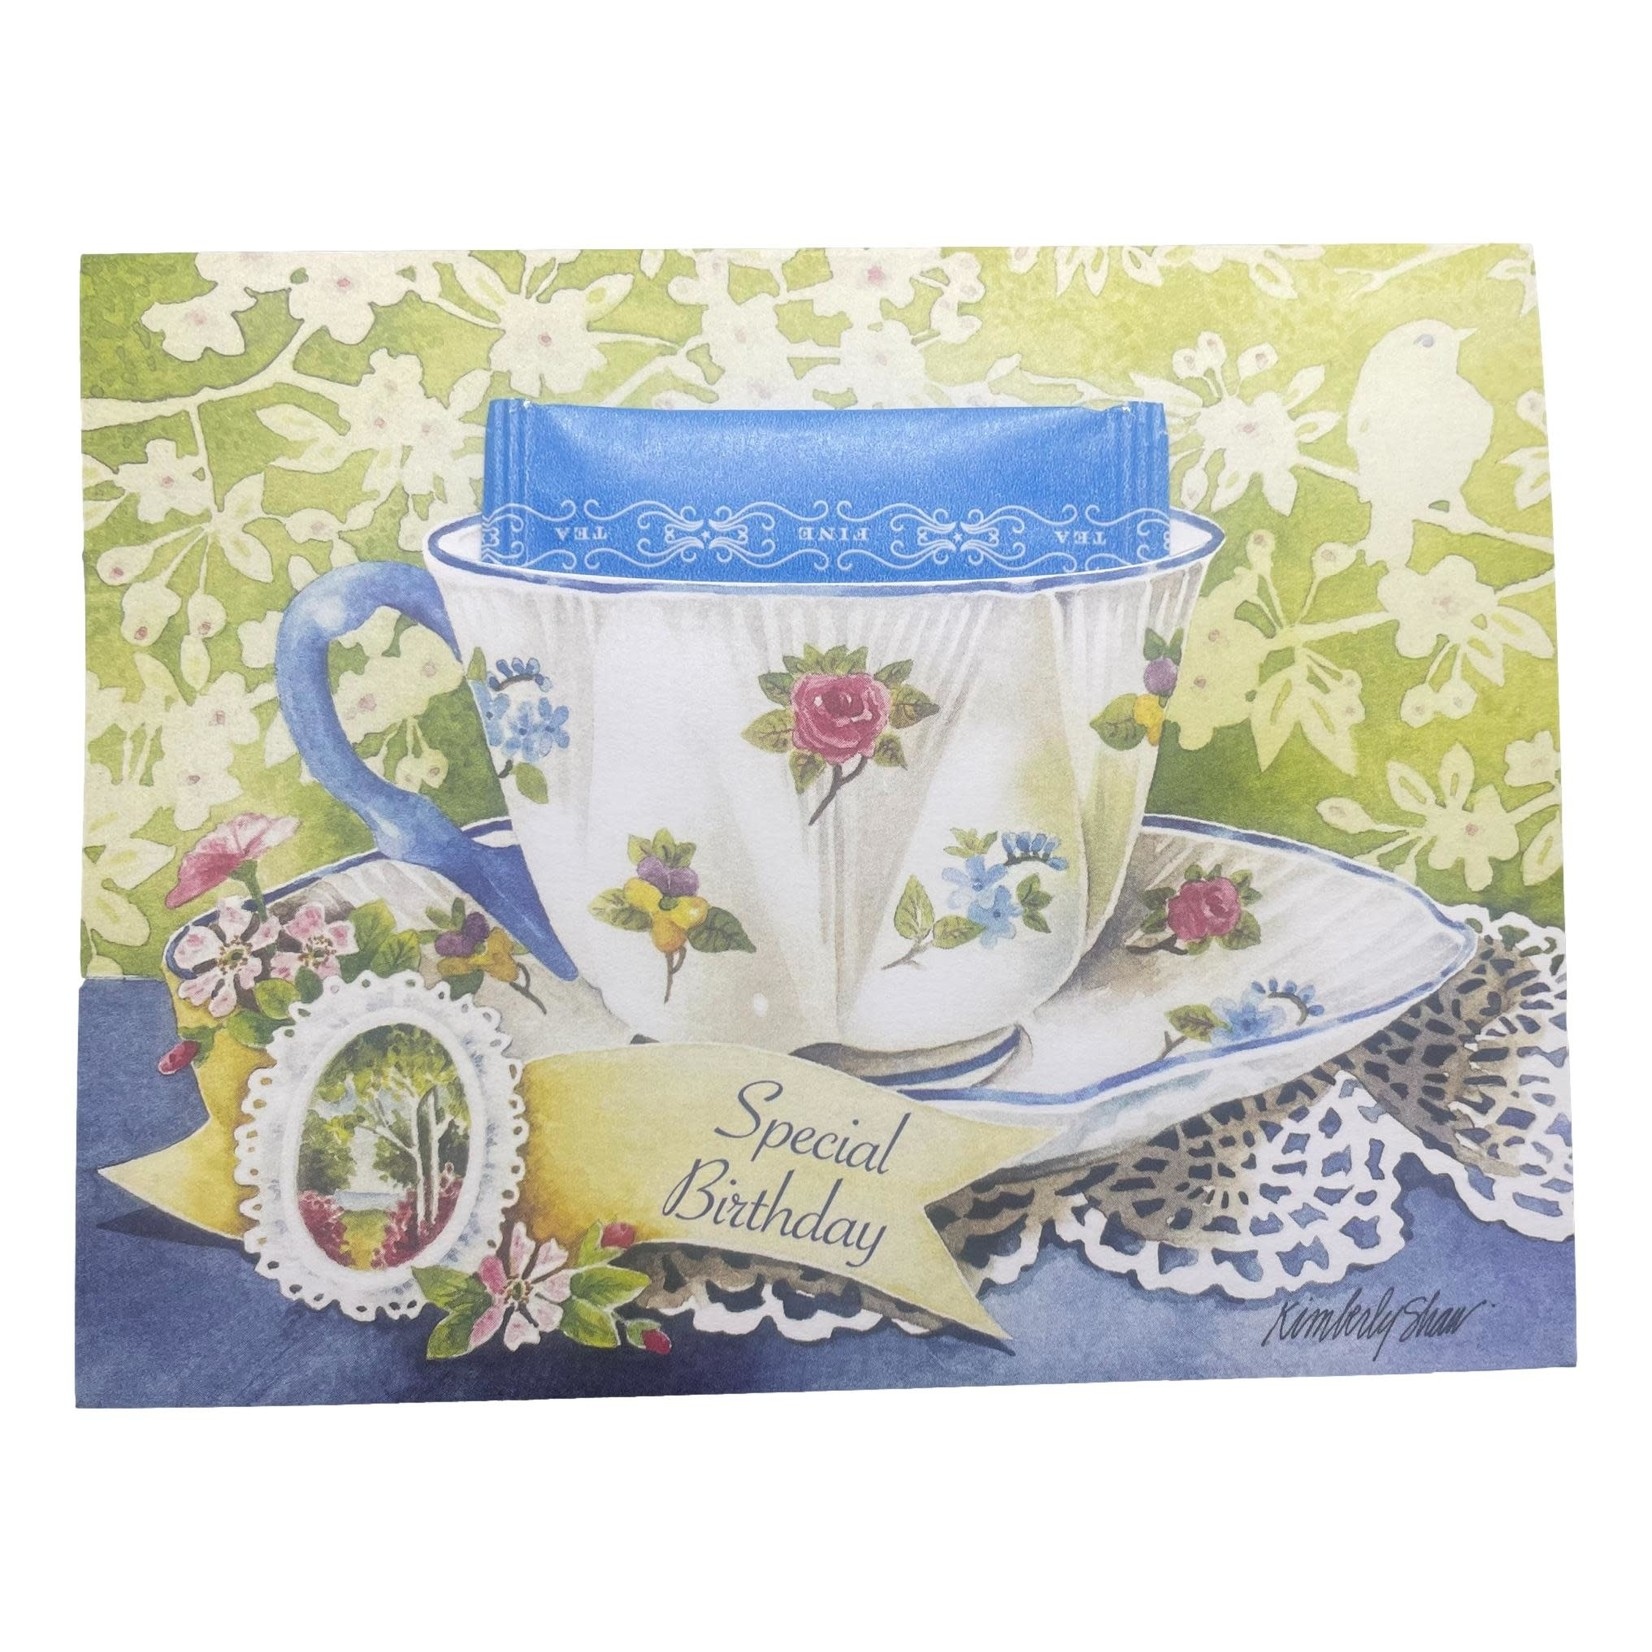 Off The Wall Gallery Special Birthday Teacup Card